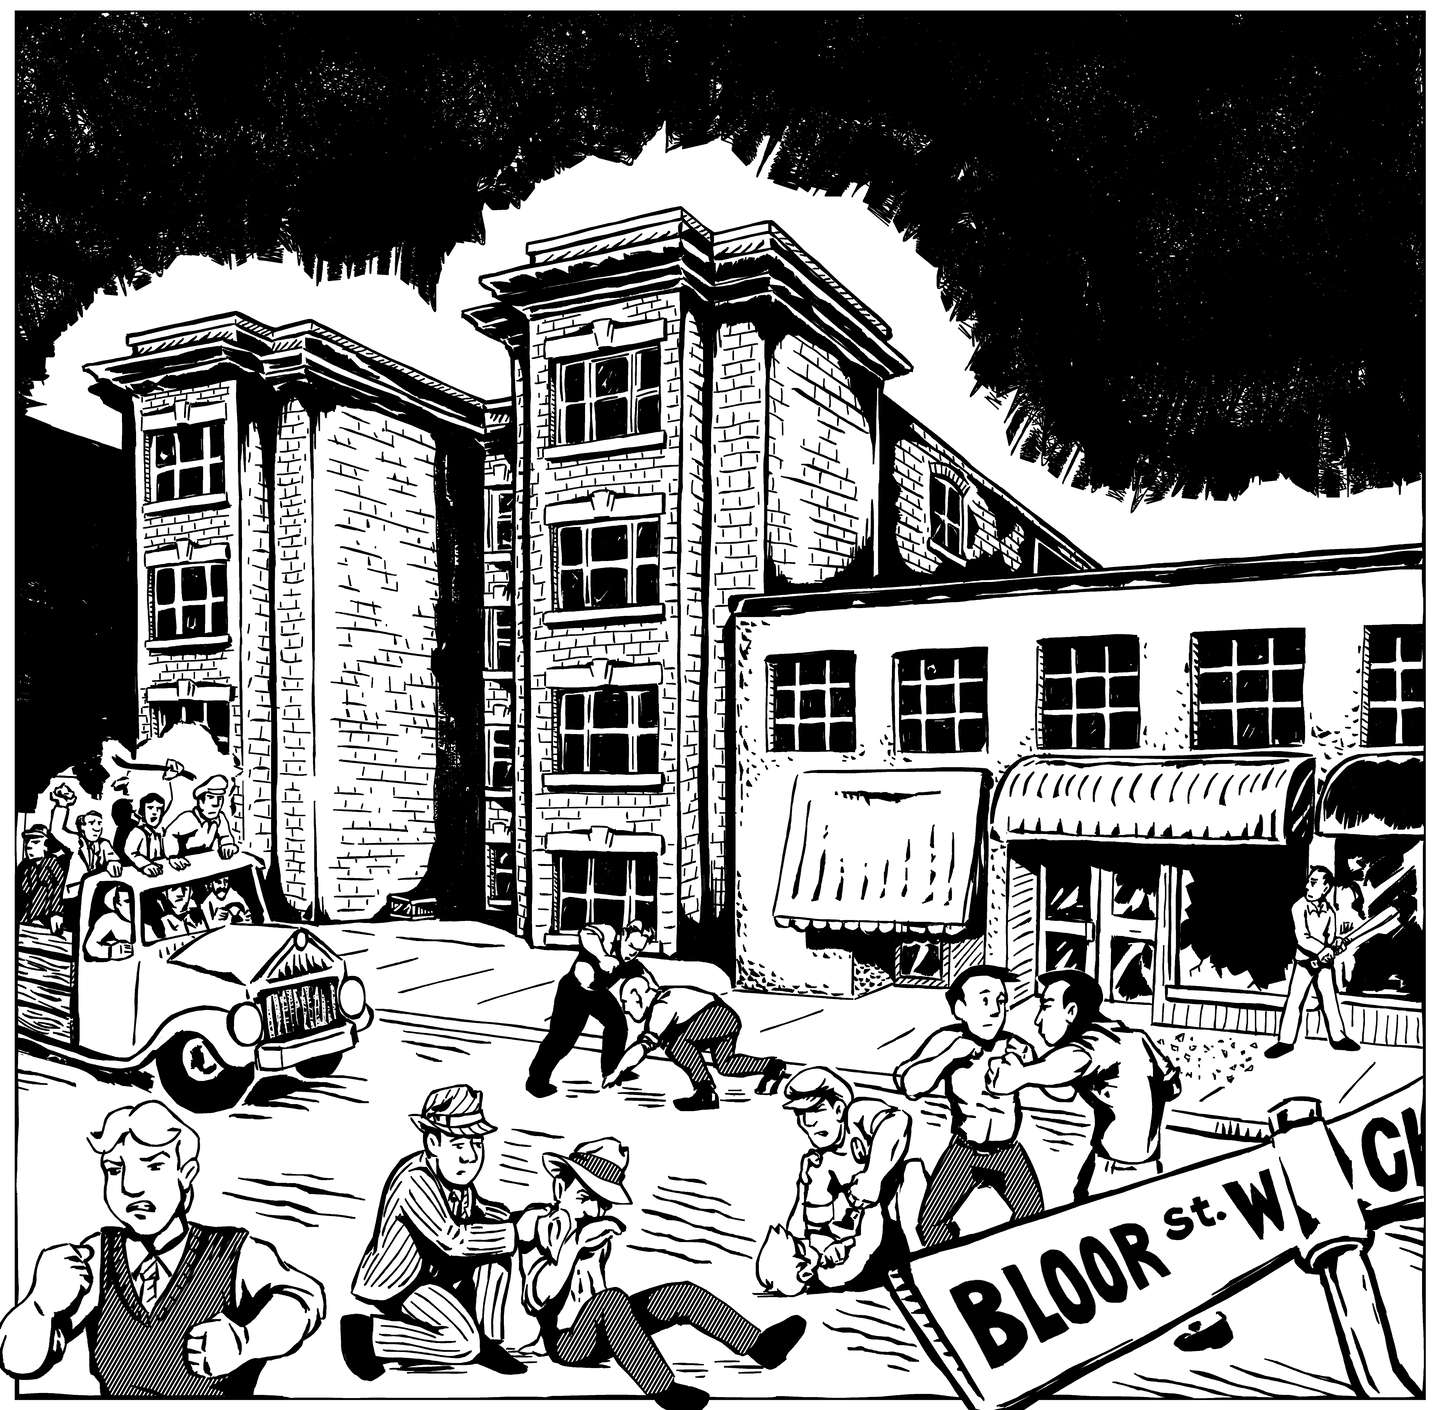 Artistic depiction of the riot